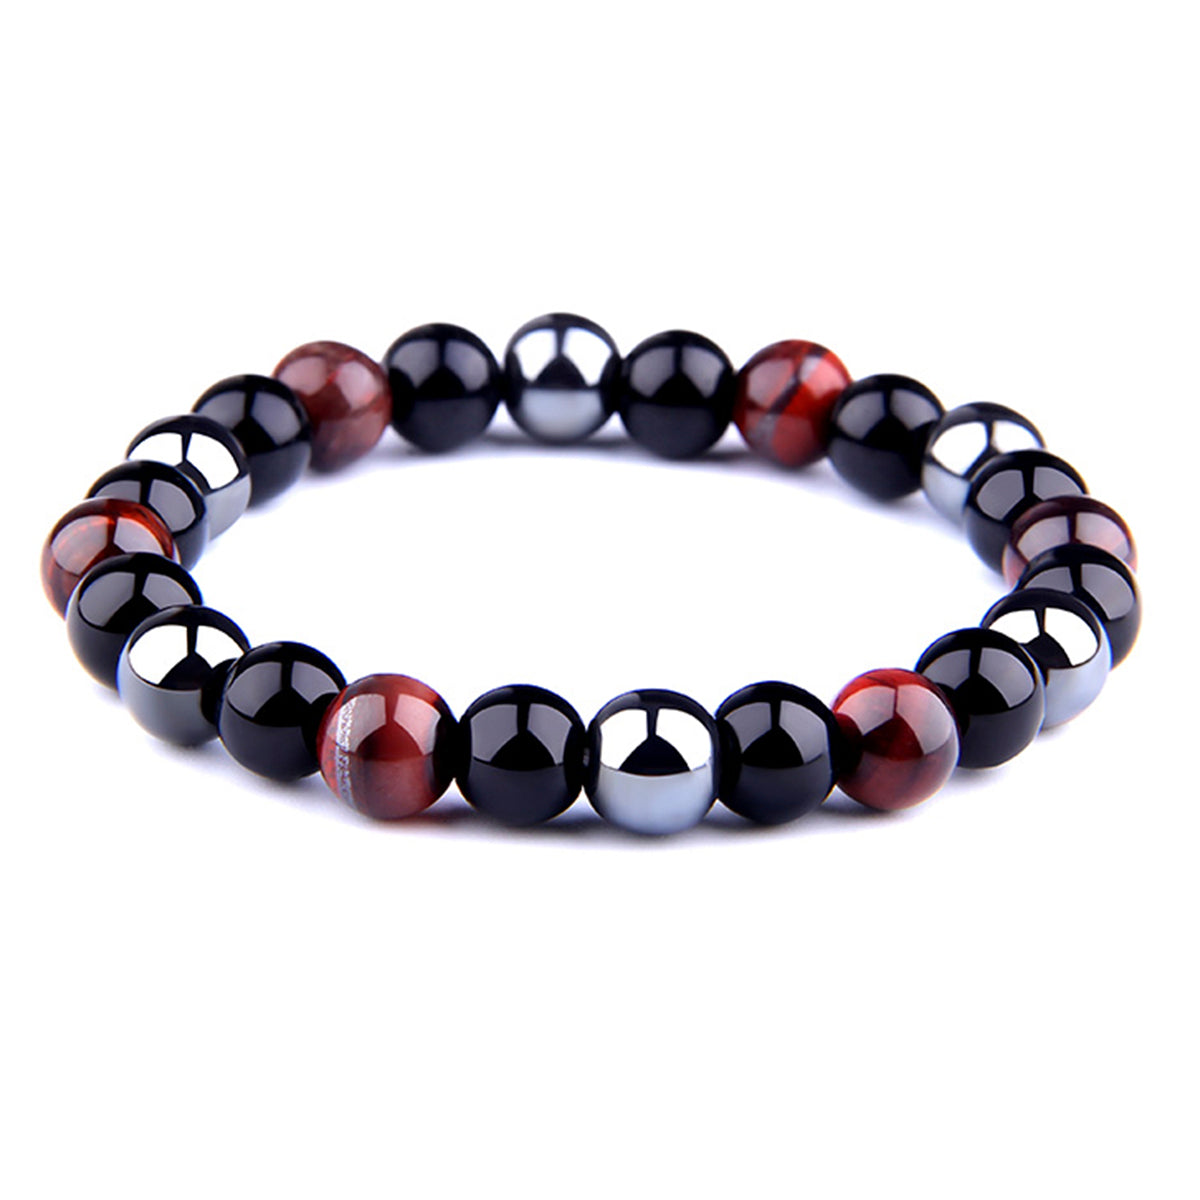 THREE-STONE BRACELET WITH DARK RED TIGER EYE, HEMATITE AND BLACK ONYX